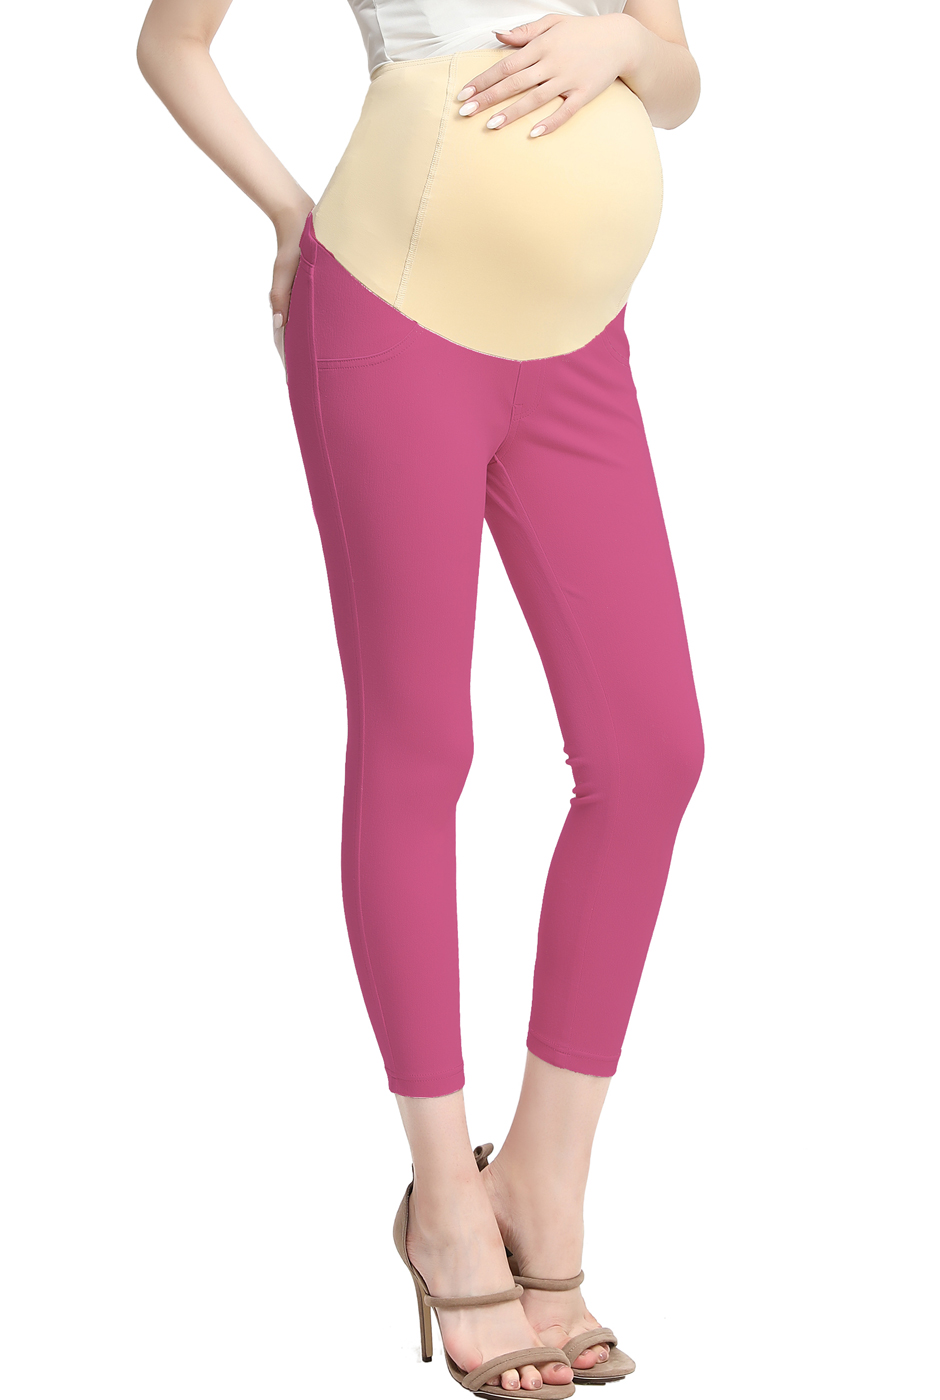 Maternity Women's Cropped Jeggings - Berry L